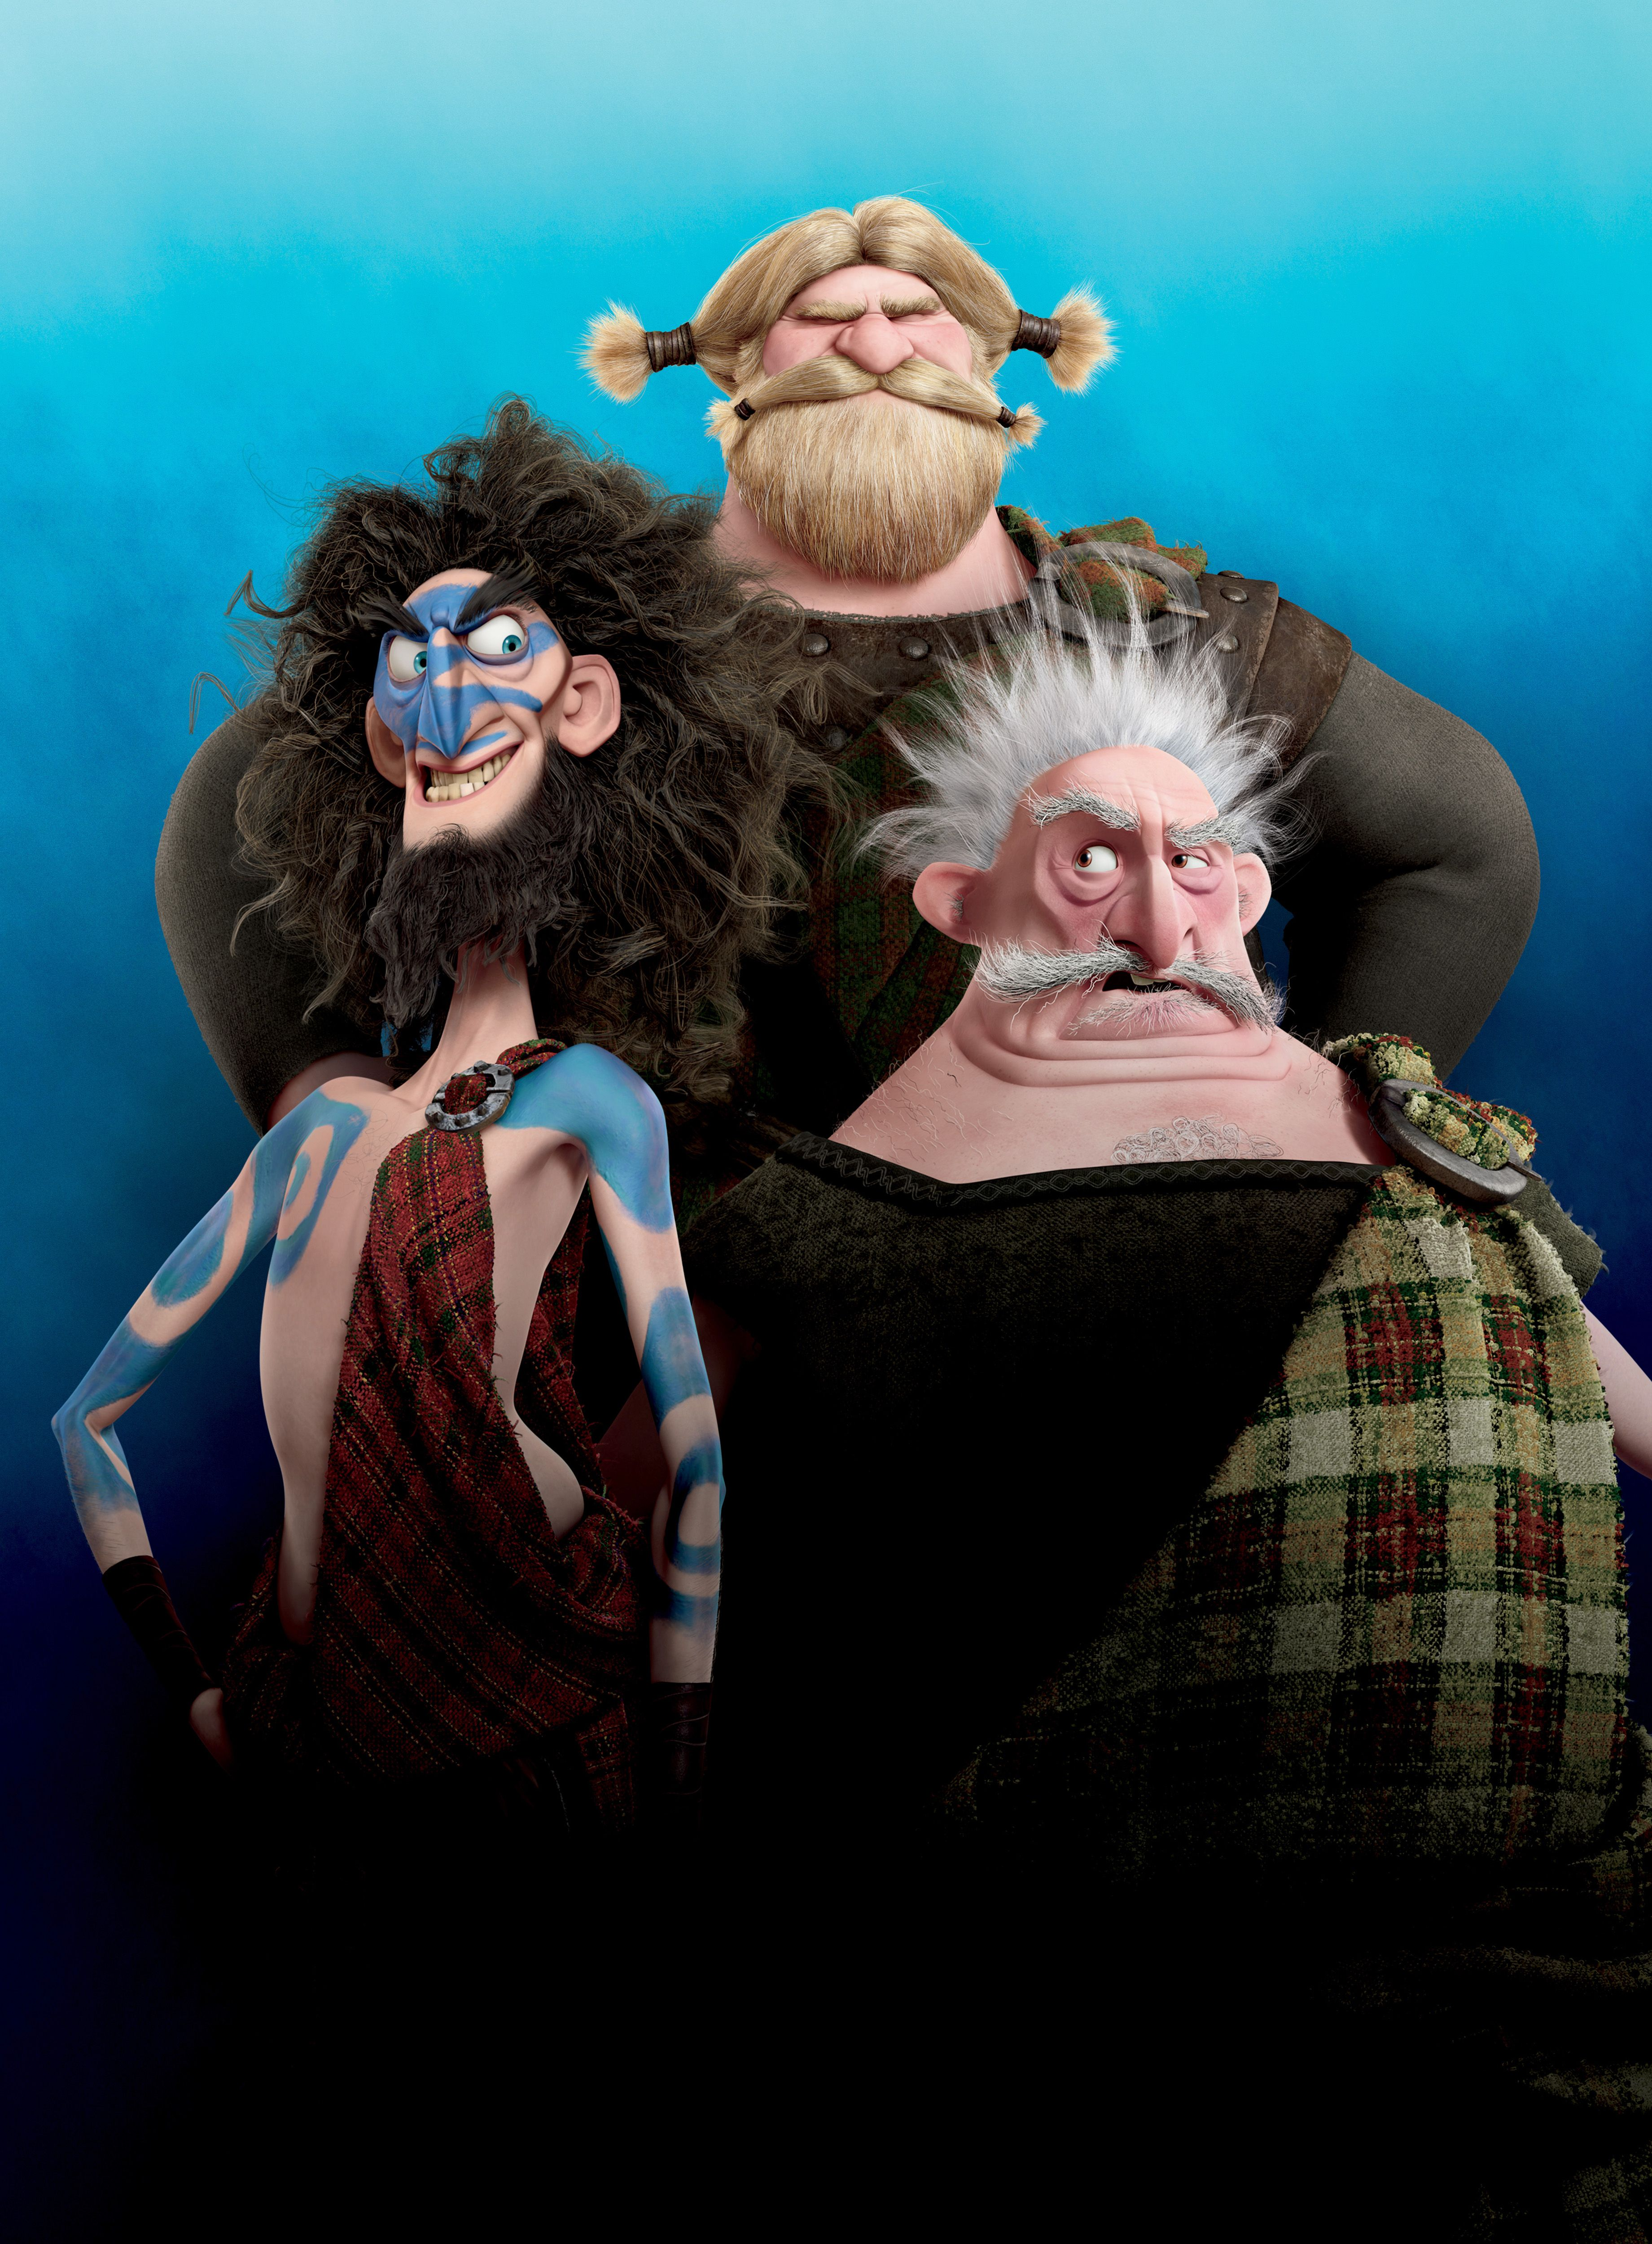 Brave (2012) Cartoon world, Brave 2012, Animated characters